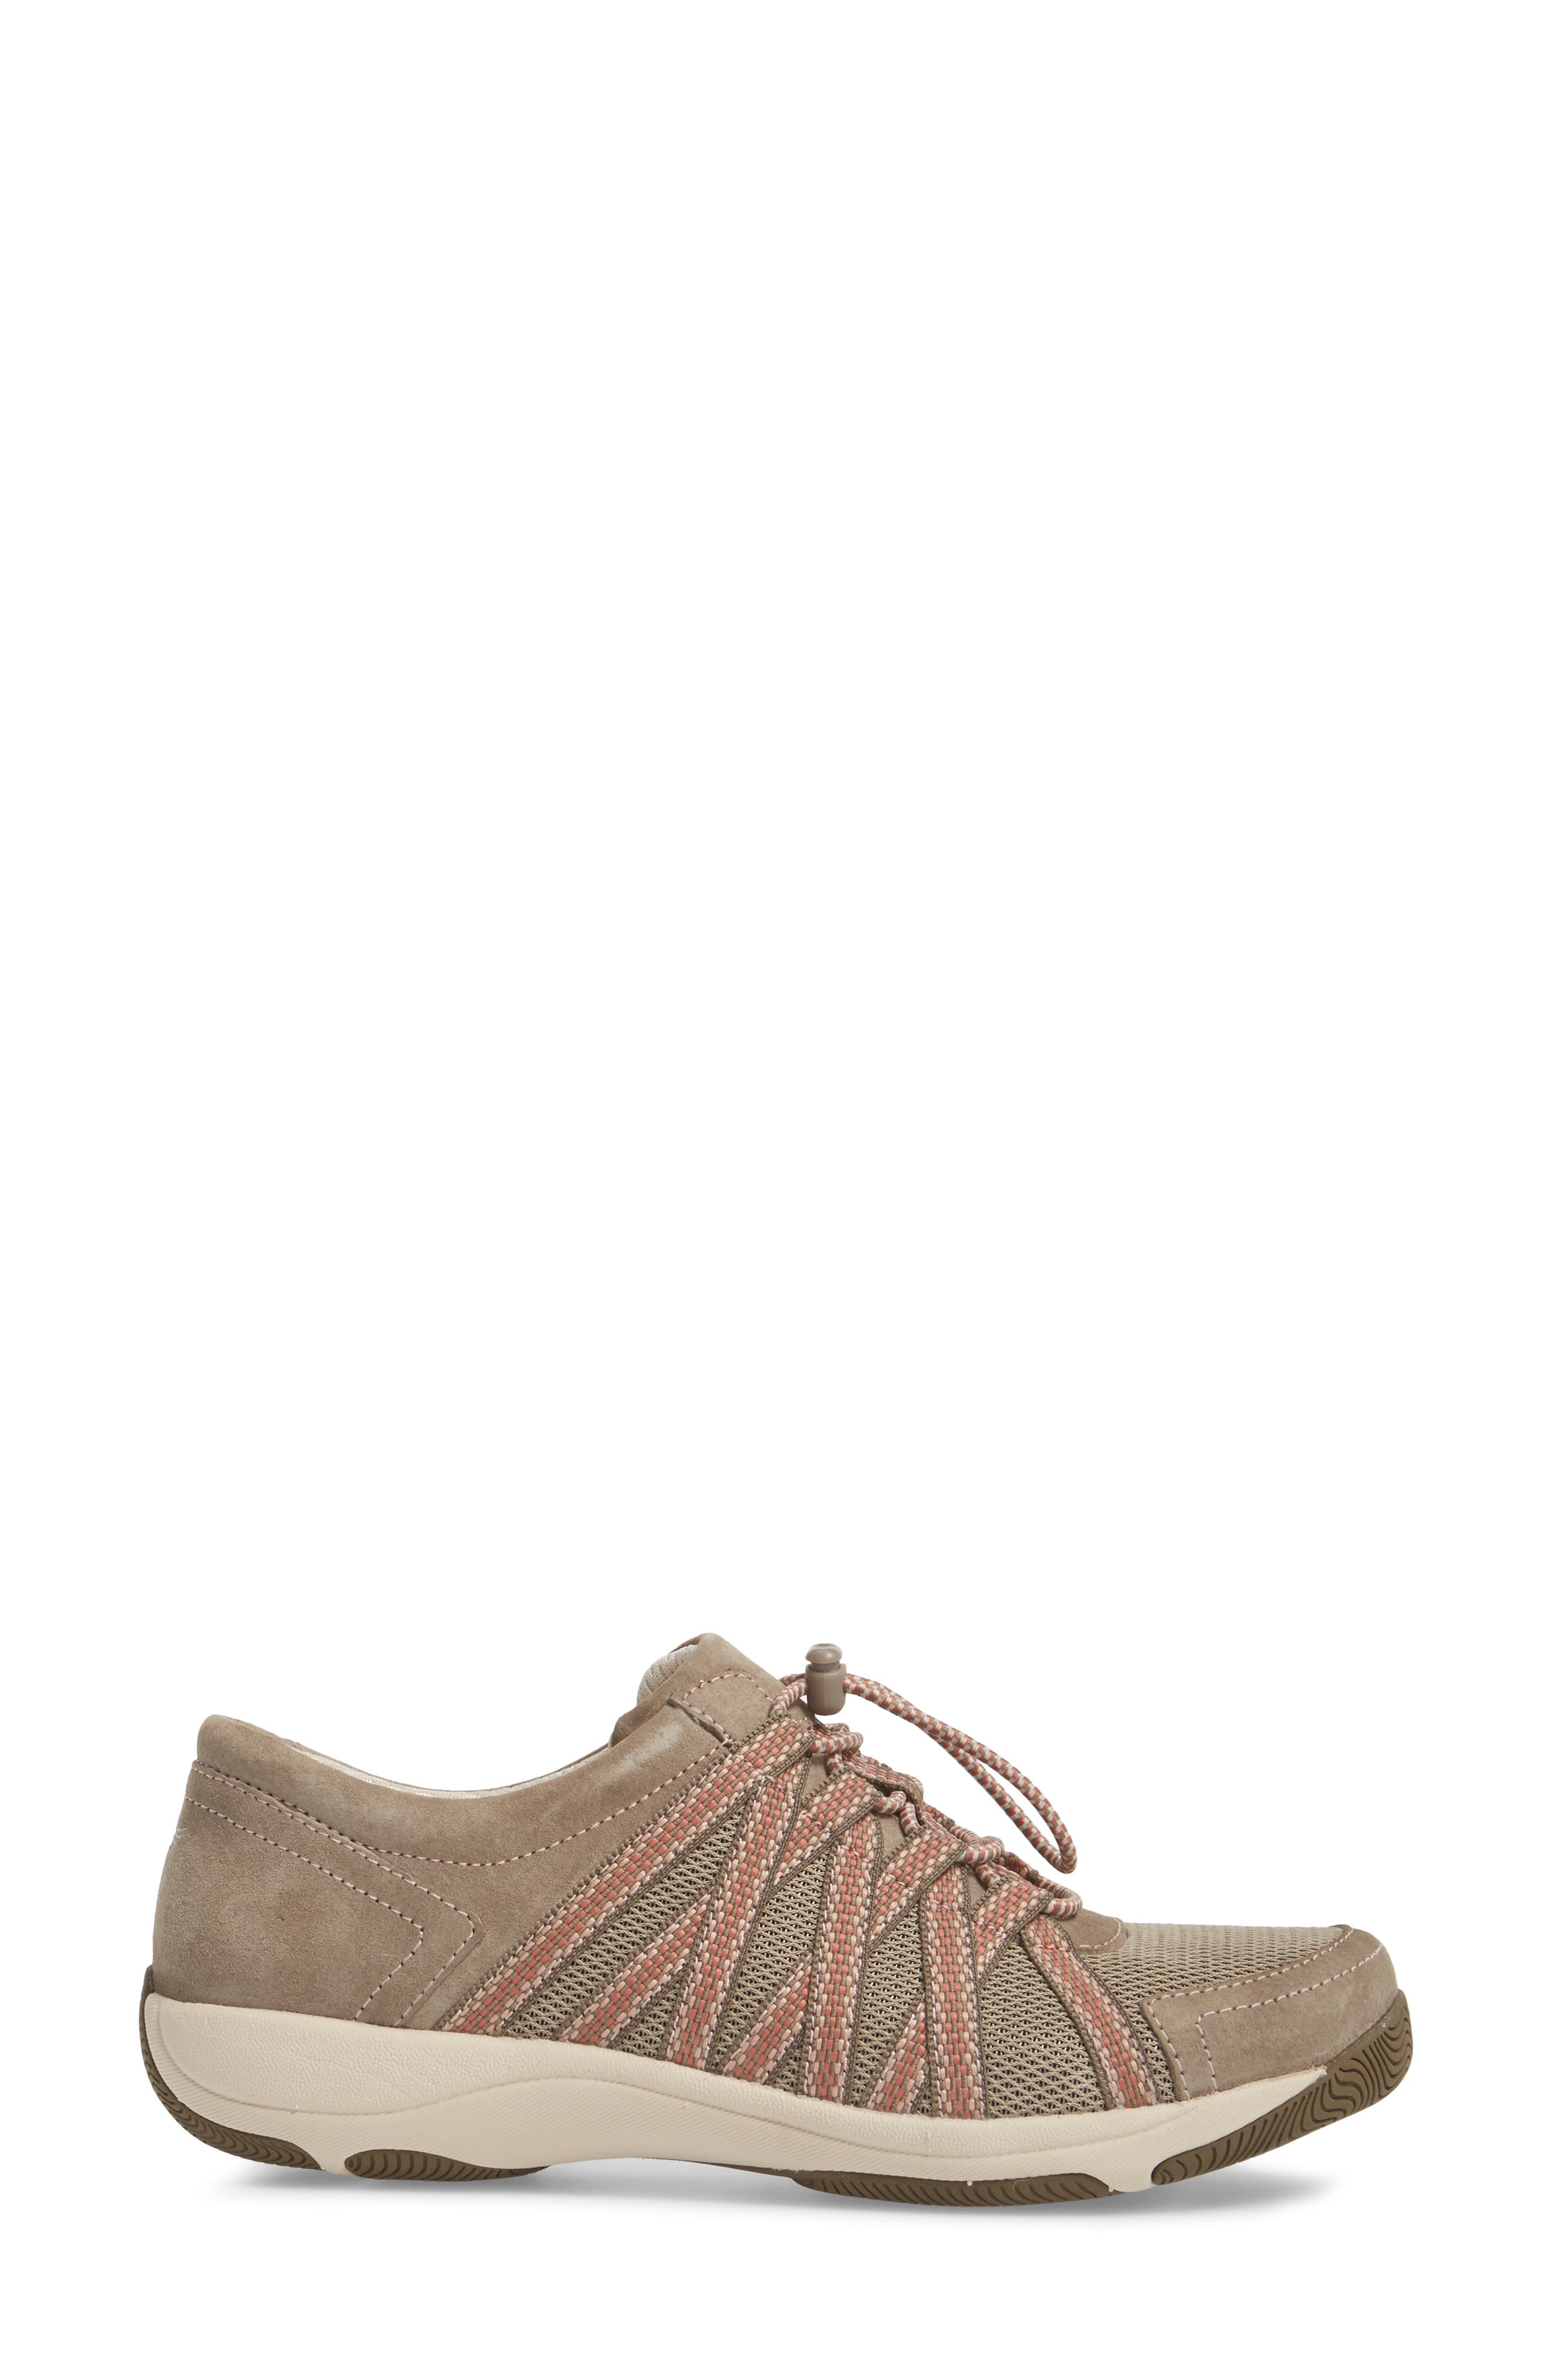 Halifax Collection Honor Sneaker,                             Alternate thumbnail 3, color,                             Walnut Suede